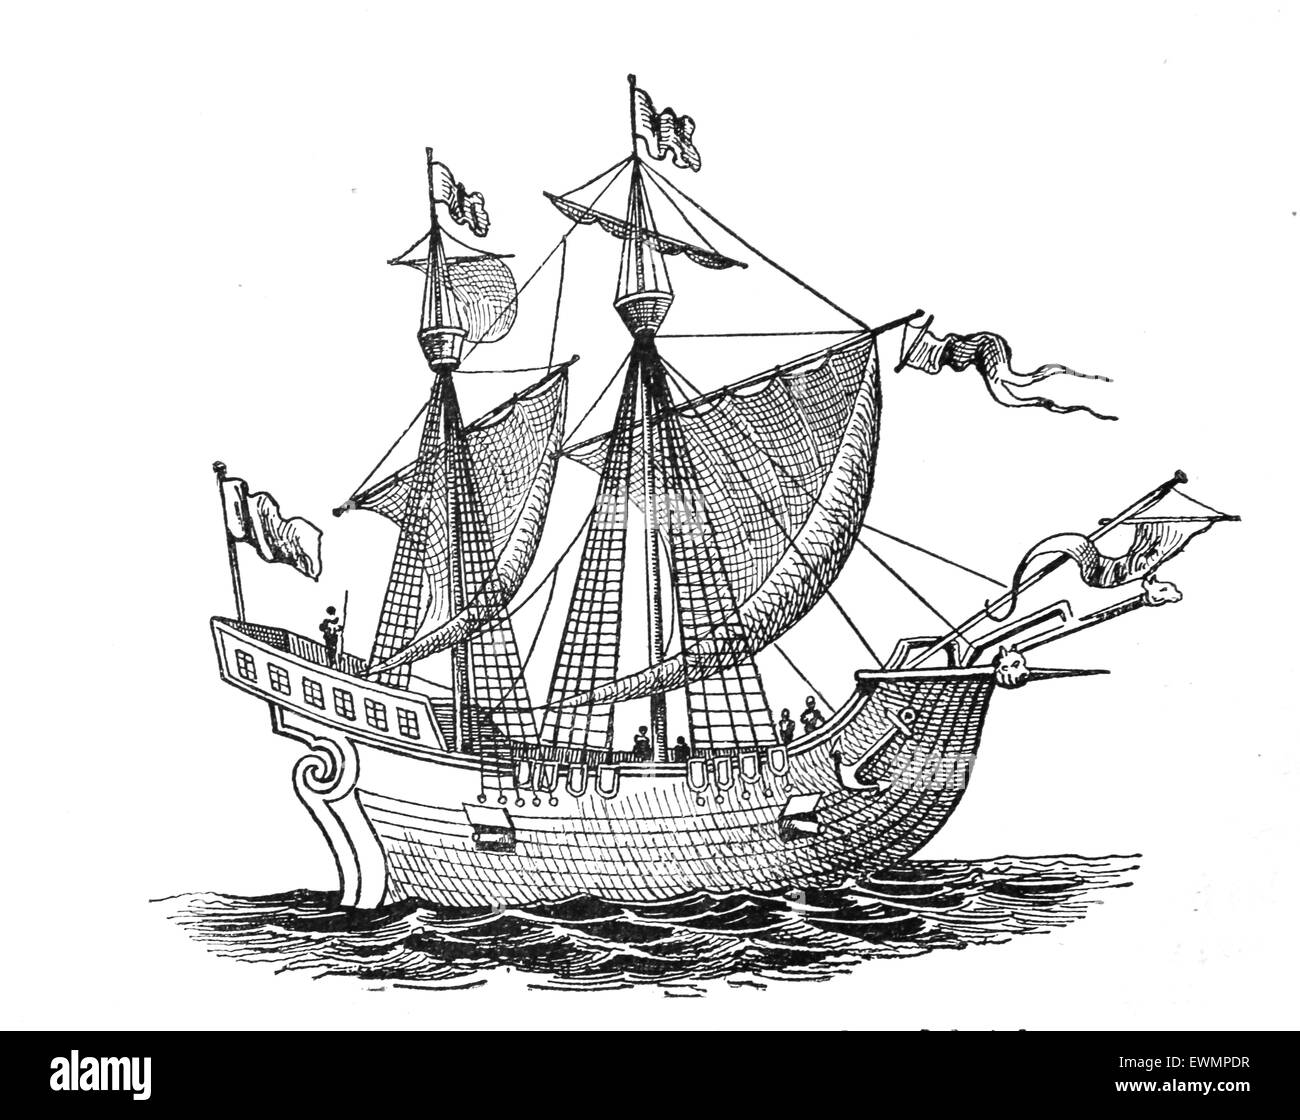 Victoria. Spanish carrack. 1st ship to successfully circumnavigate the World. 1518-19. Explorers: F.Magellan and - Stock Image